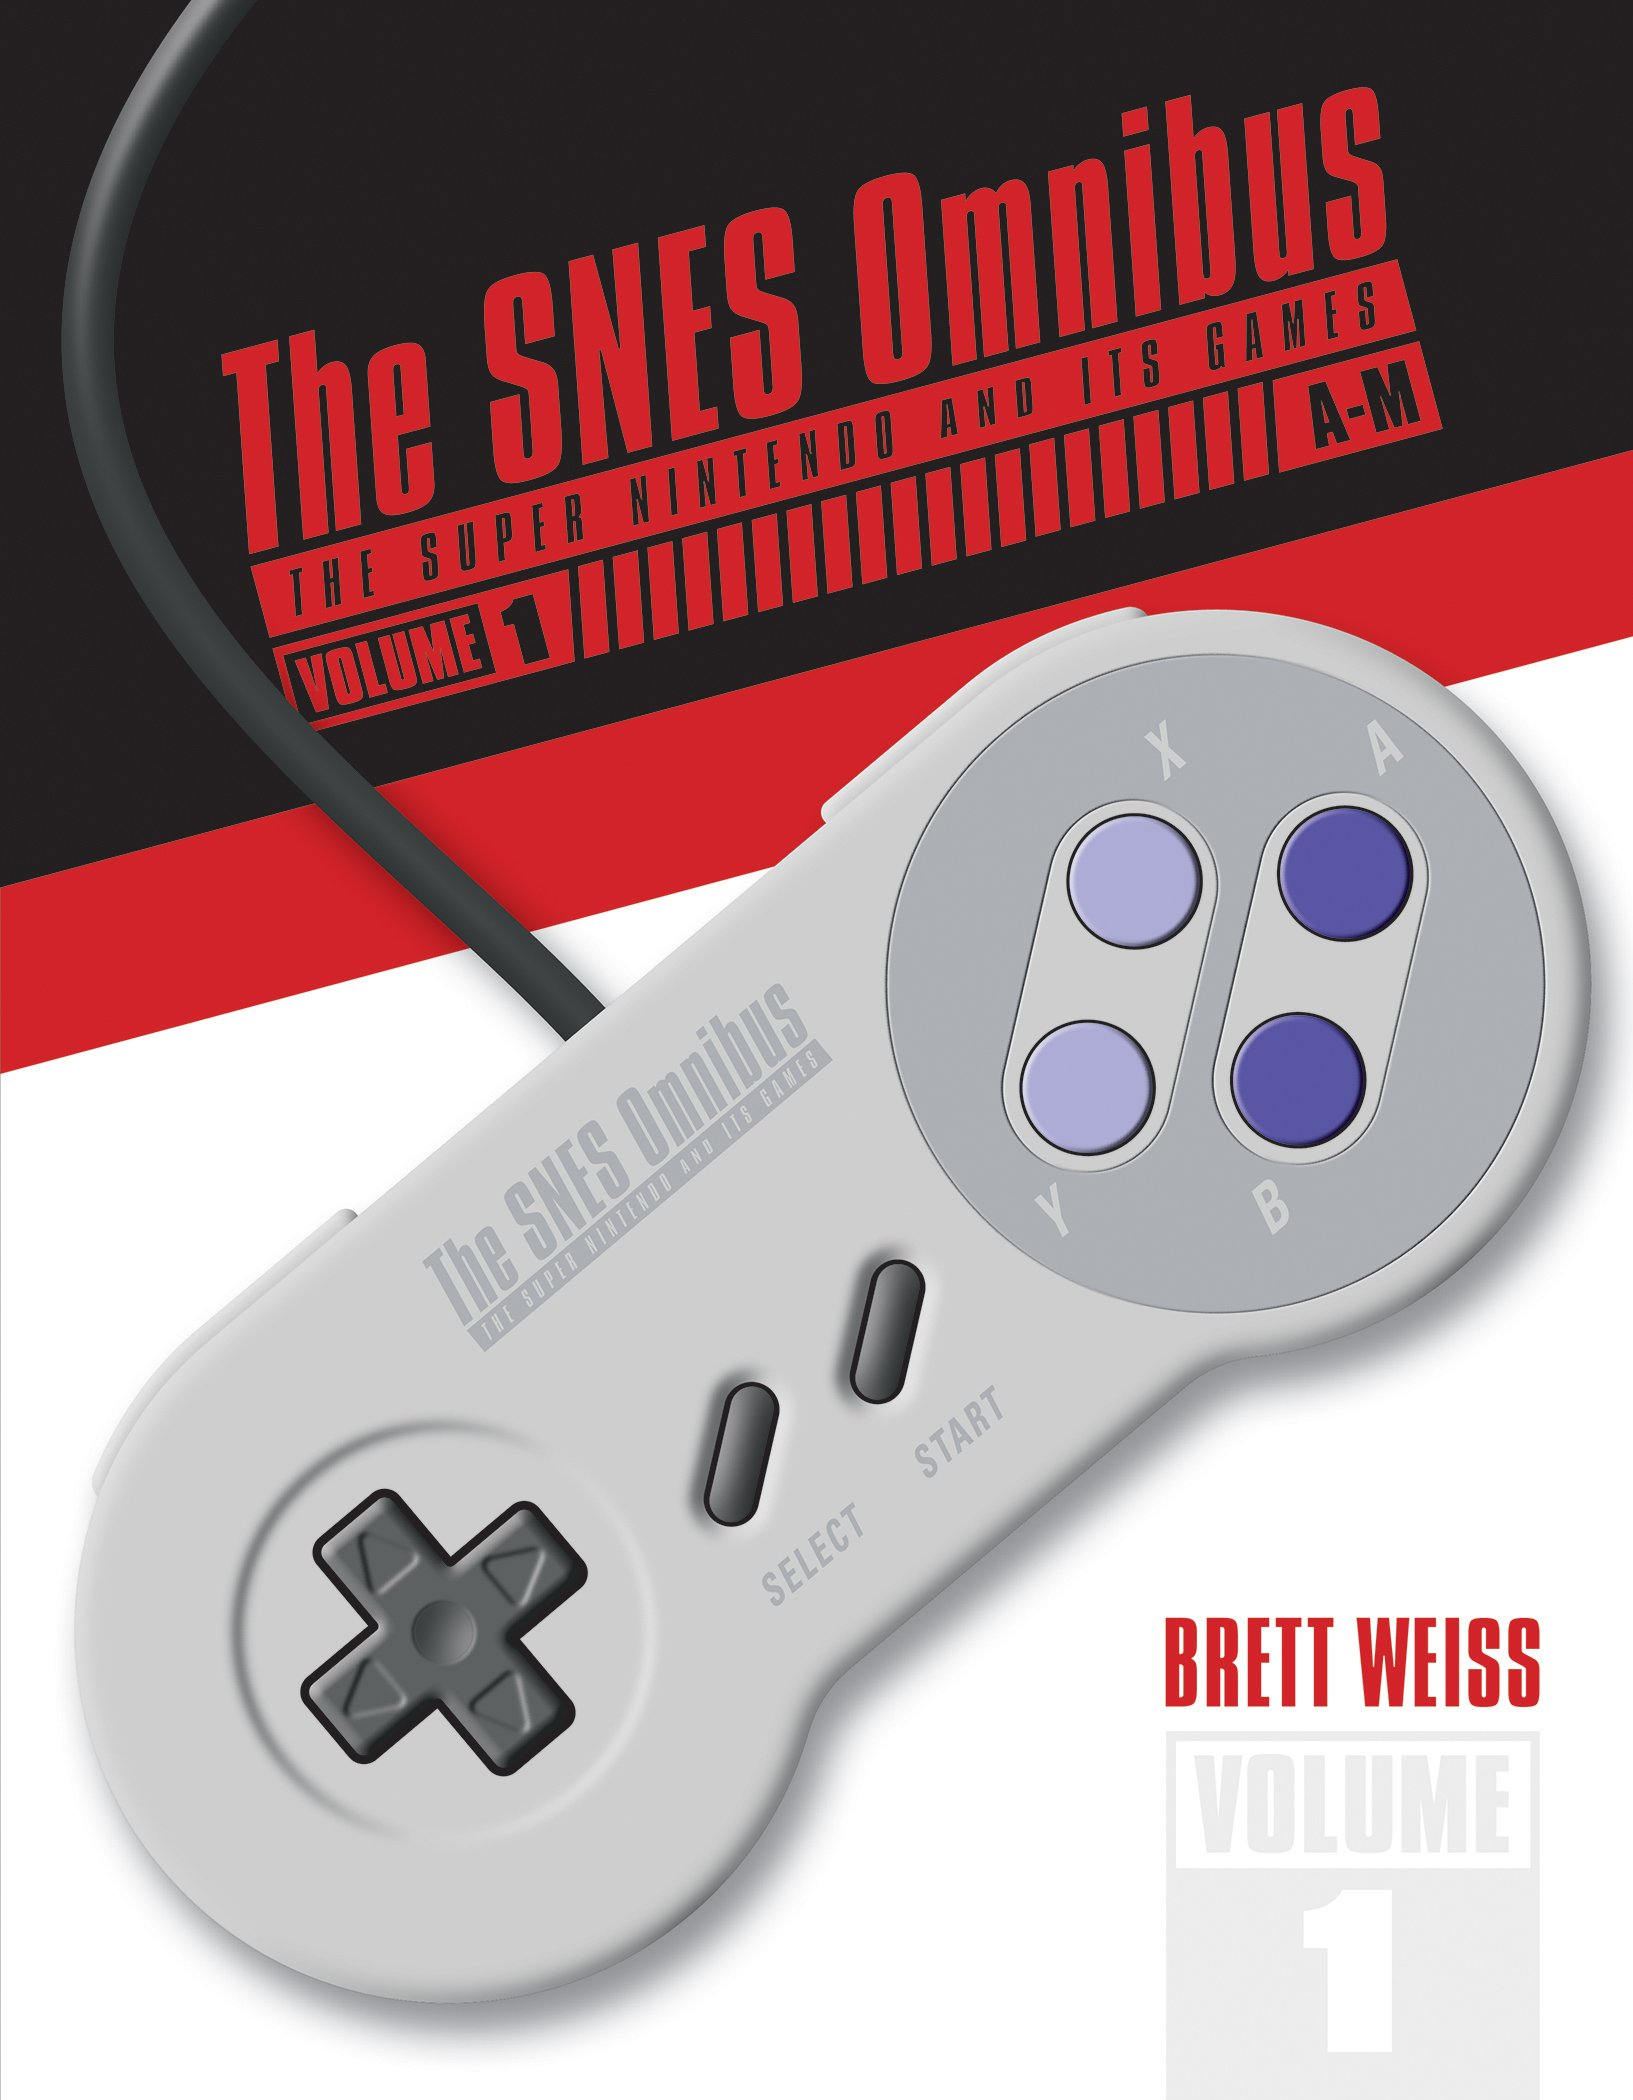 The RetroBeat: The SNES Omnibus is a great way to explore